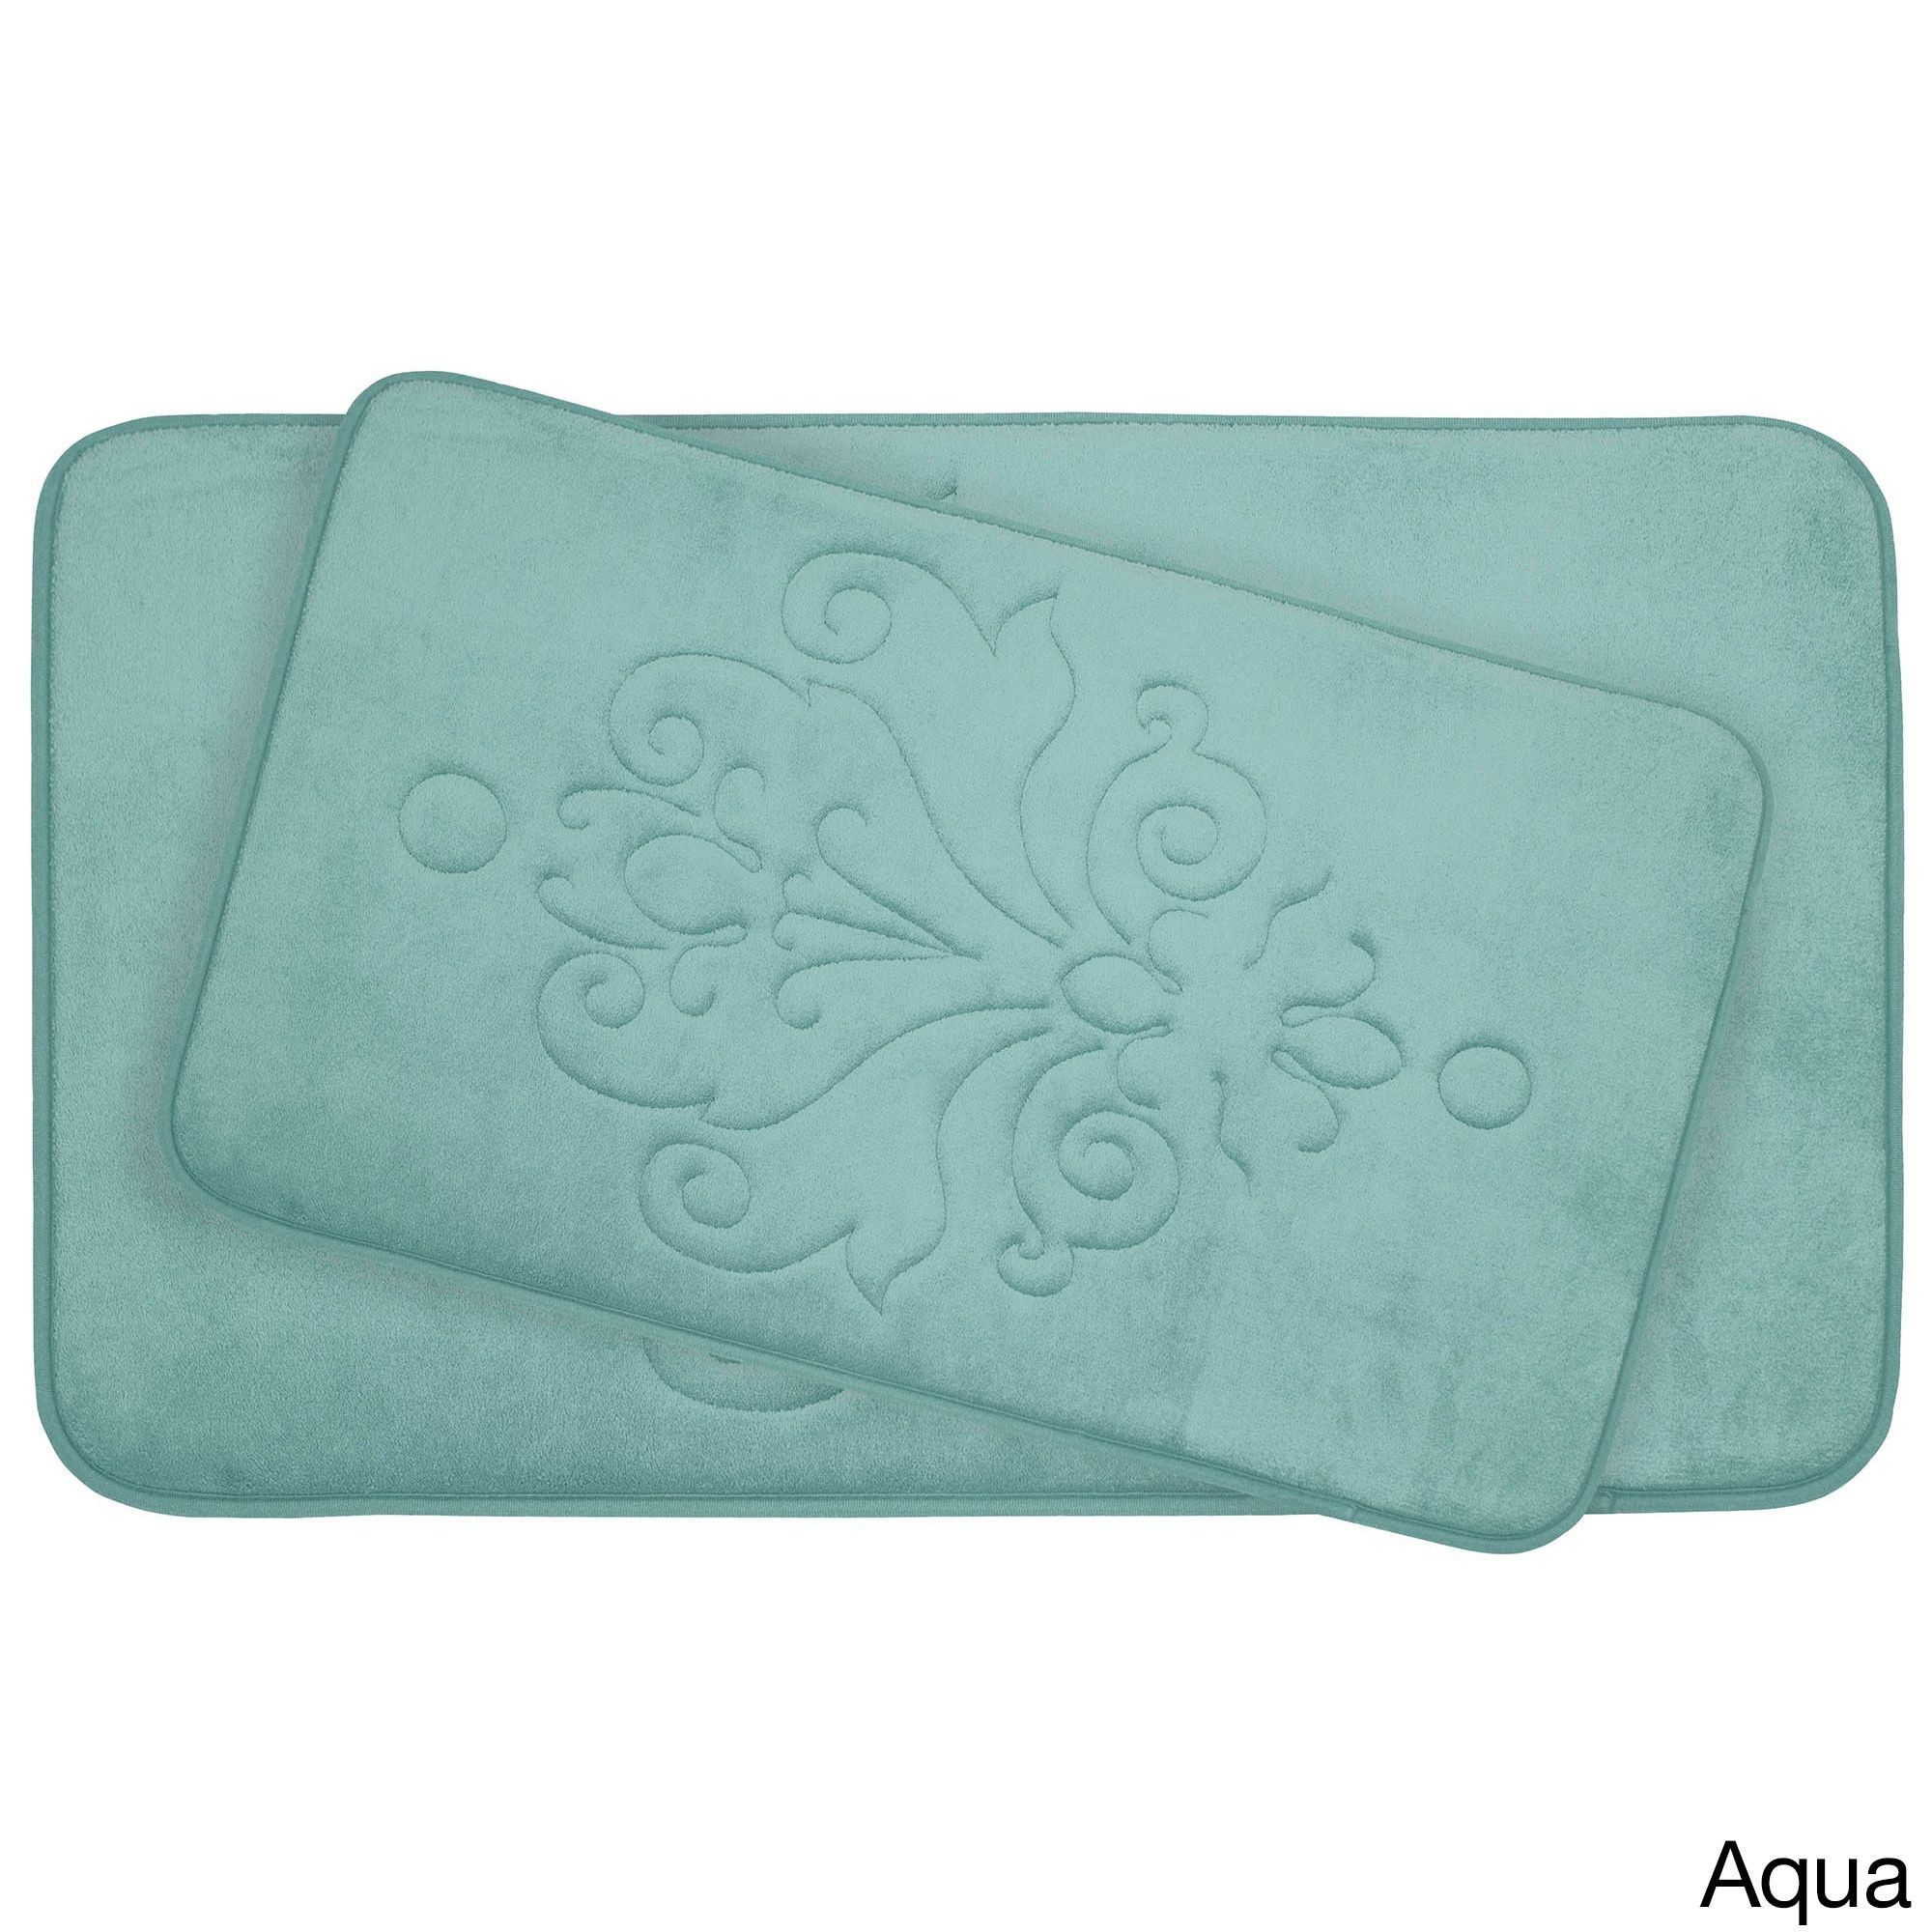 4b39540b226 Reve Micro Plush 2-piece Memory Foam Bath Mat Set with BounceComfort ...